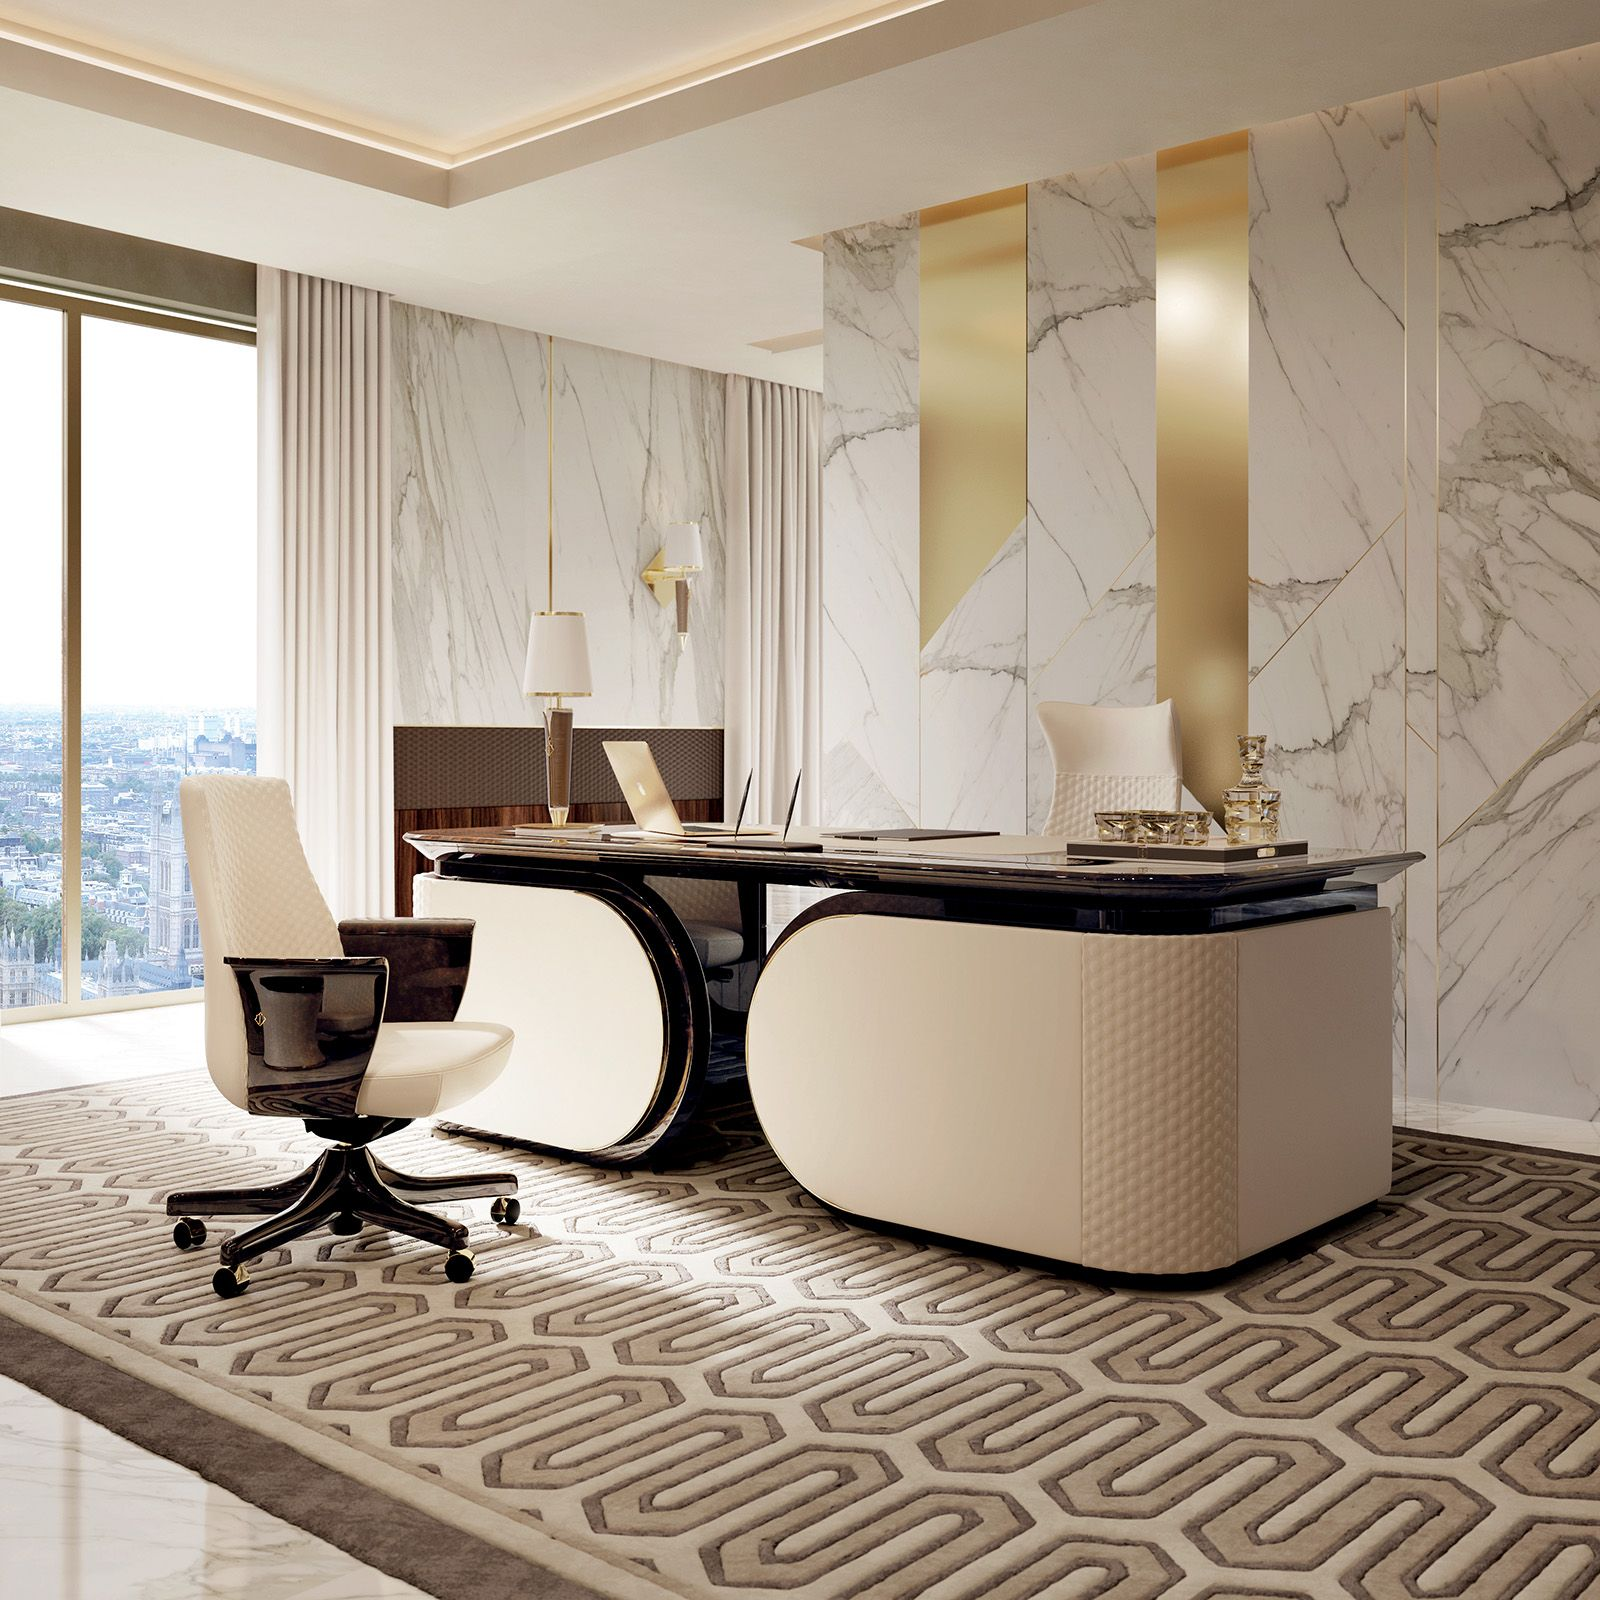 Vogue collection italian luxury office desk for Luxury office interior